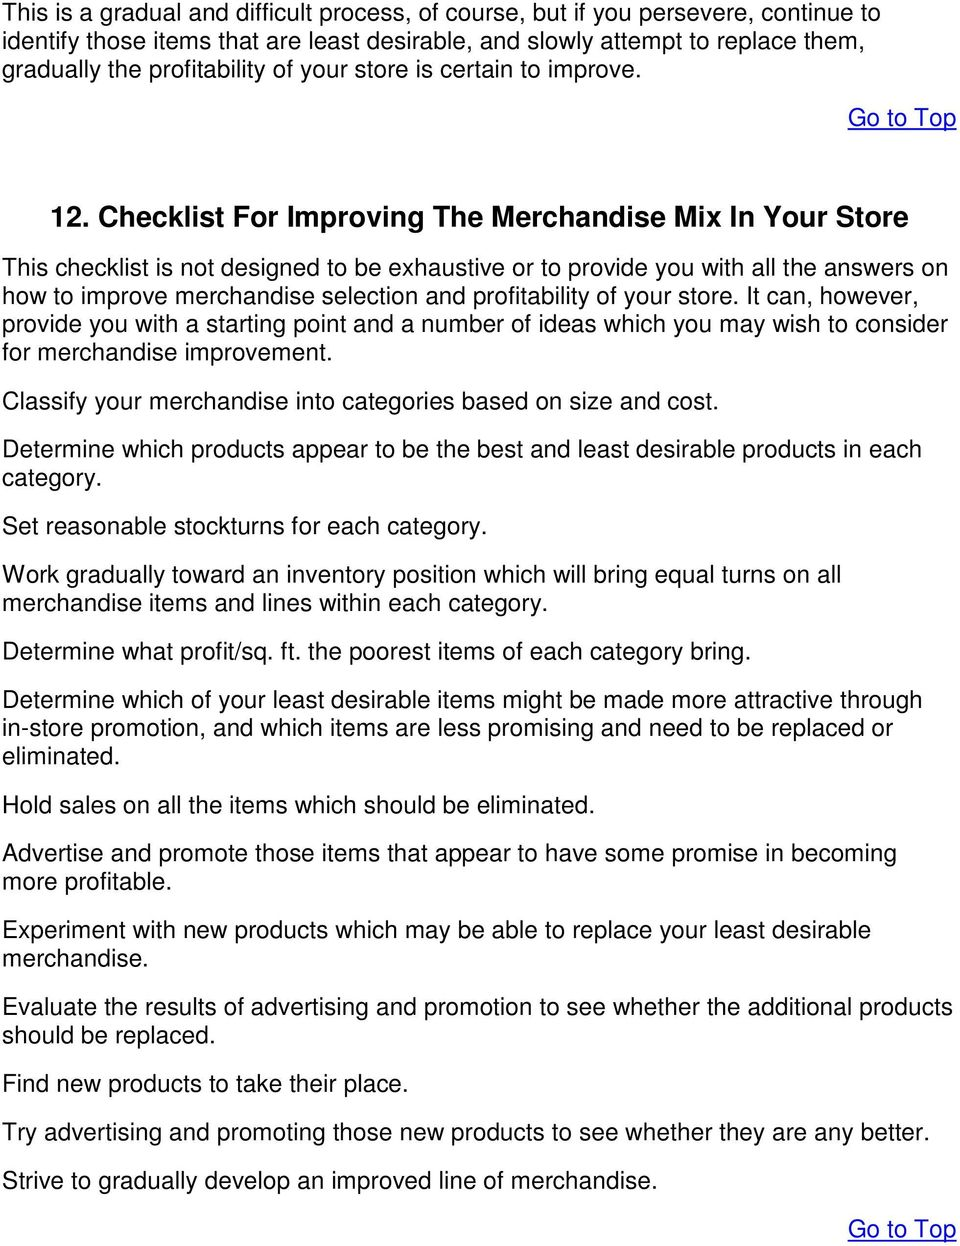 Checklist For Improving The Merchandise Mix In Your Store This checklist is not designed to be exhaustive or to provide you with all the answers on how to improve merchandise selection and